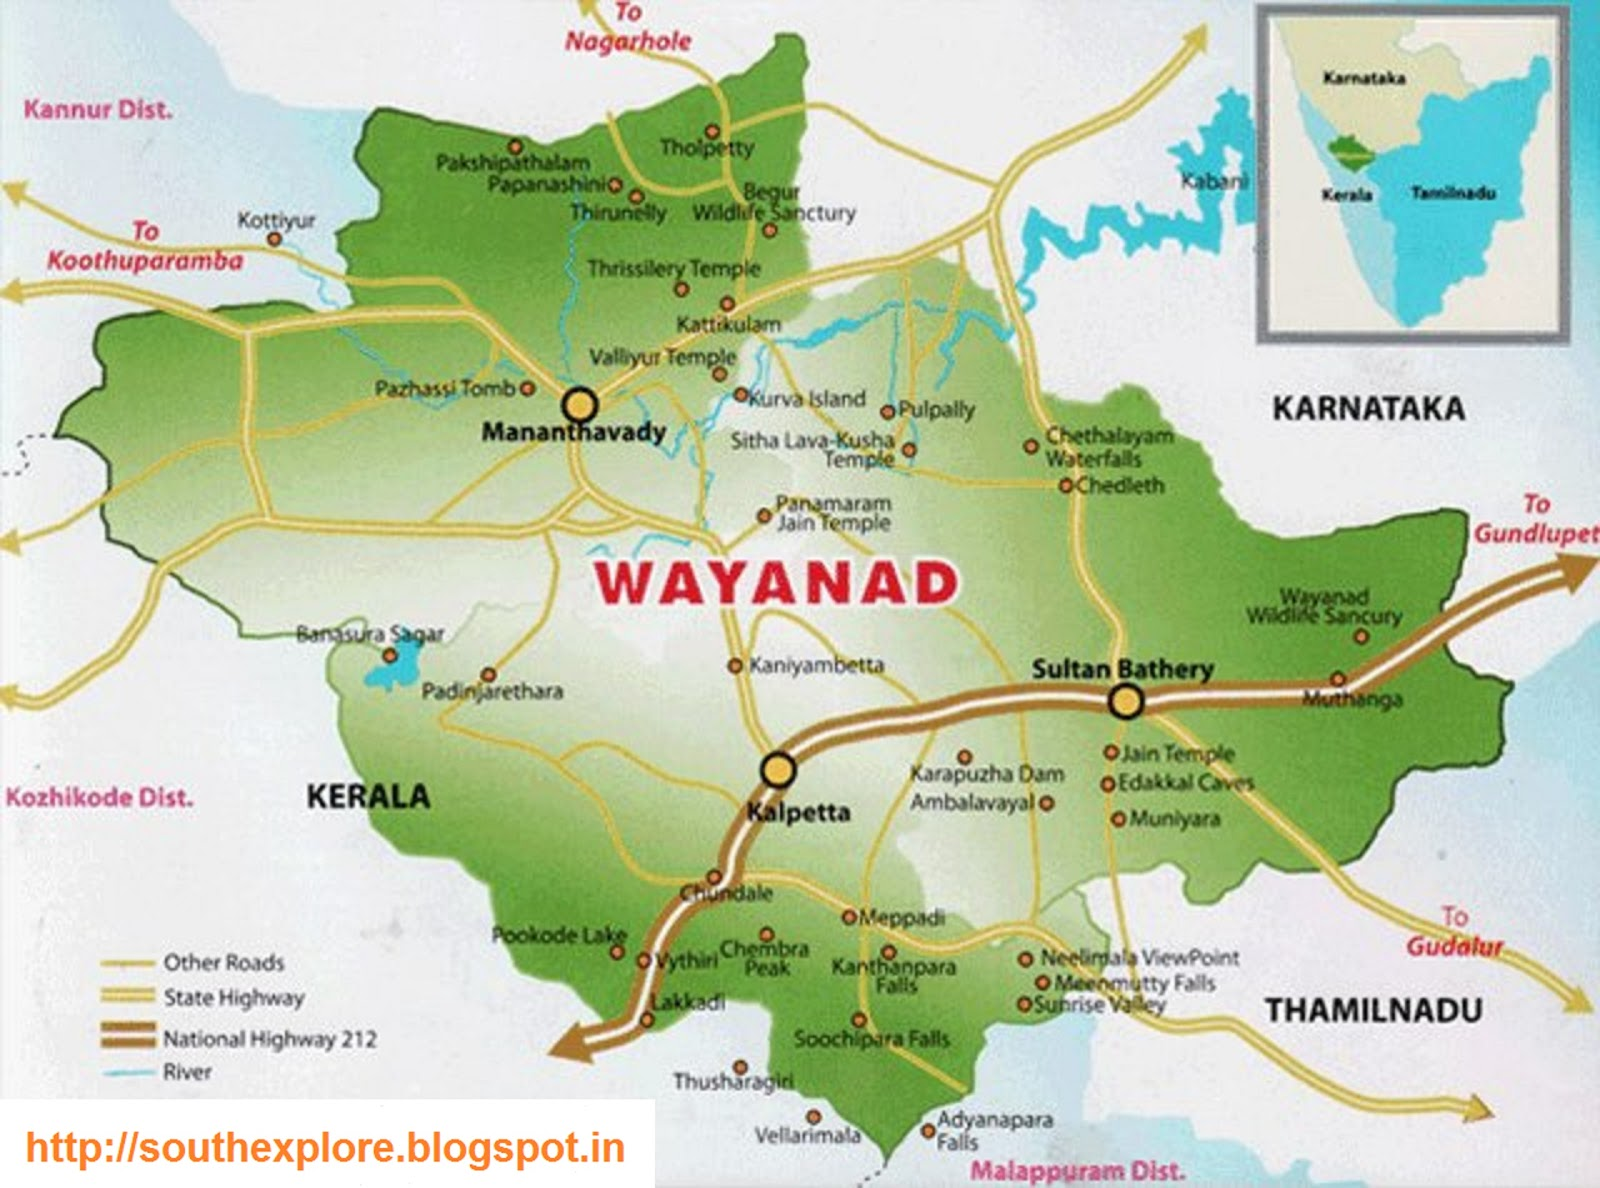 WAYANAD TOURISM MAP TOURIST PLACES IN WAYANAD – South India Map With Tourist Places